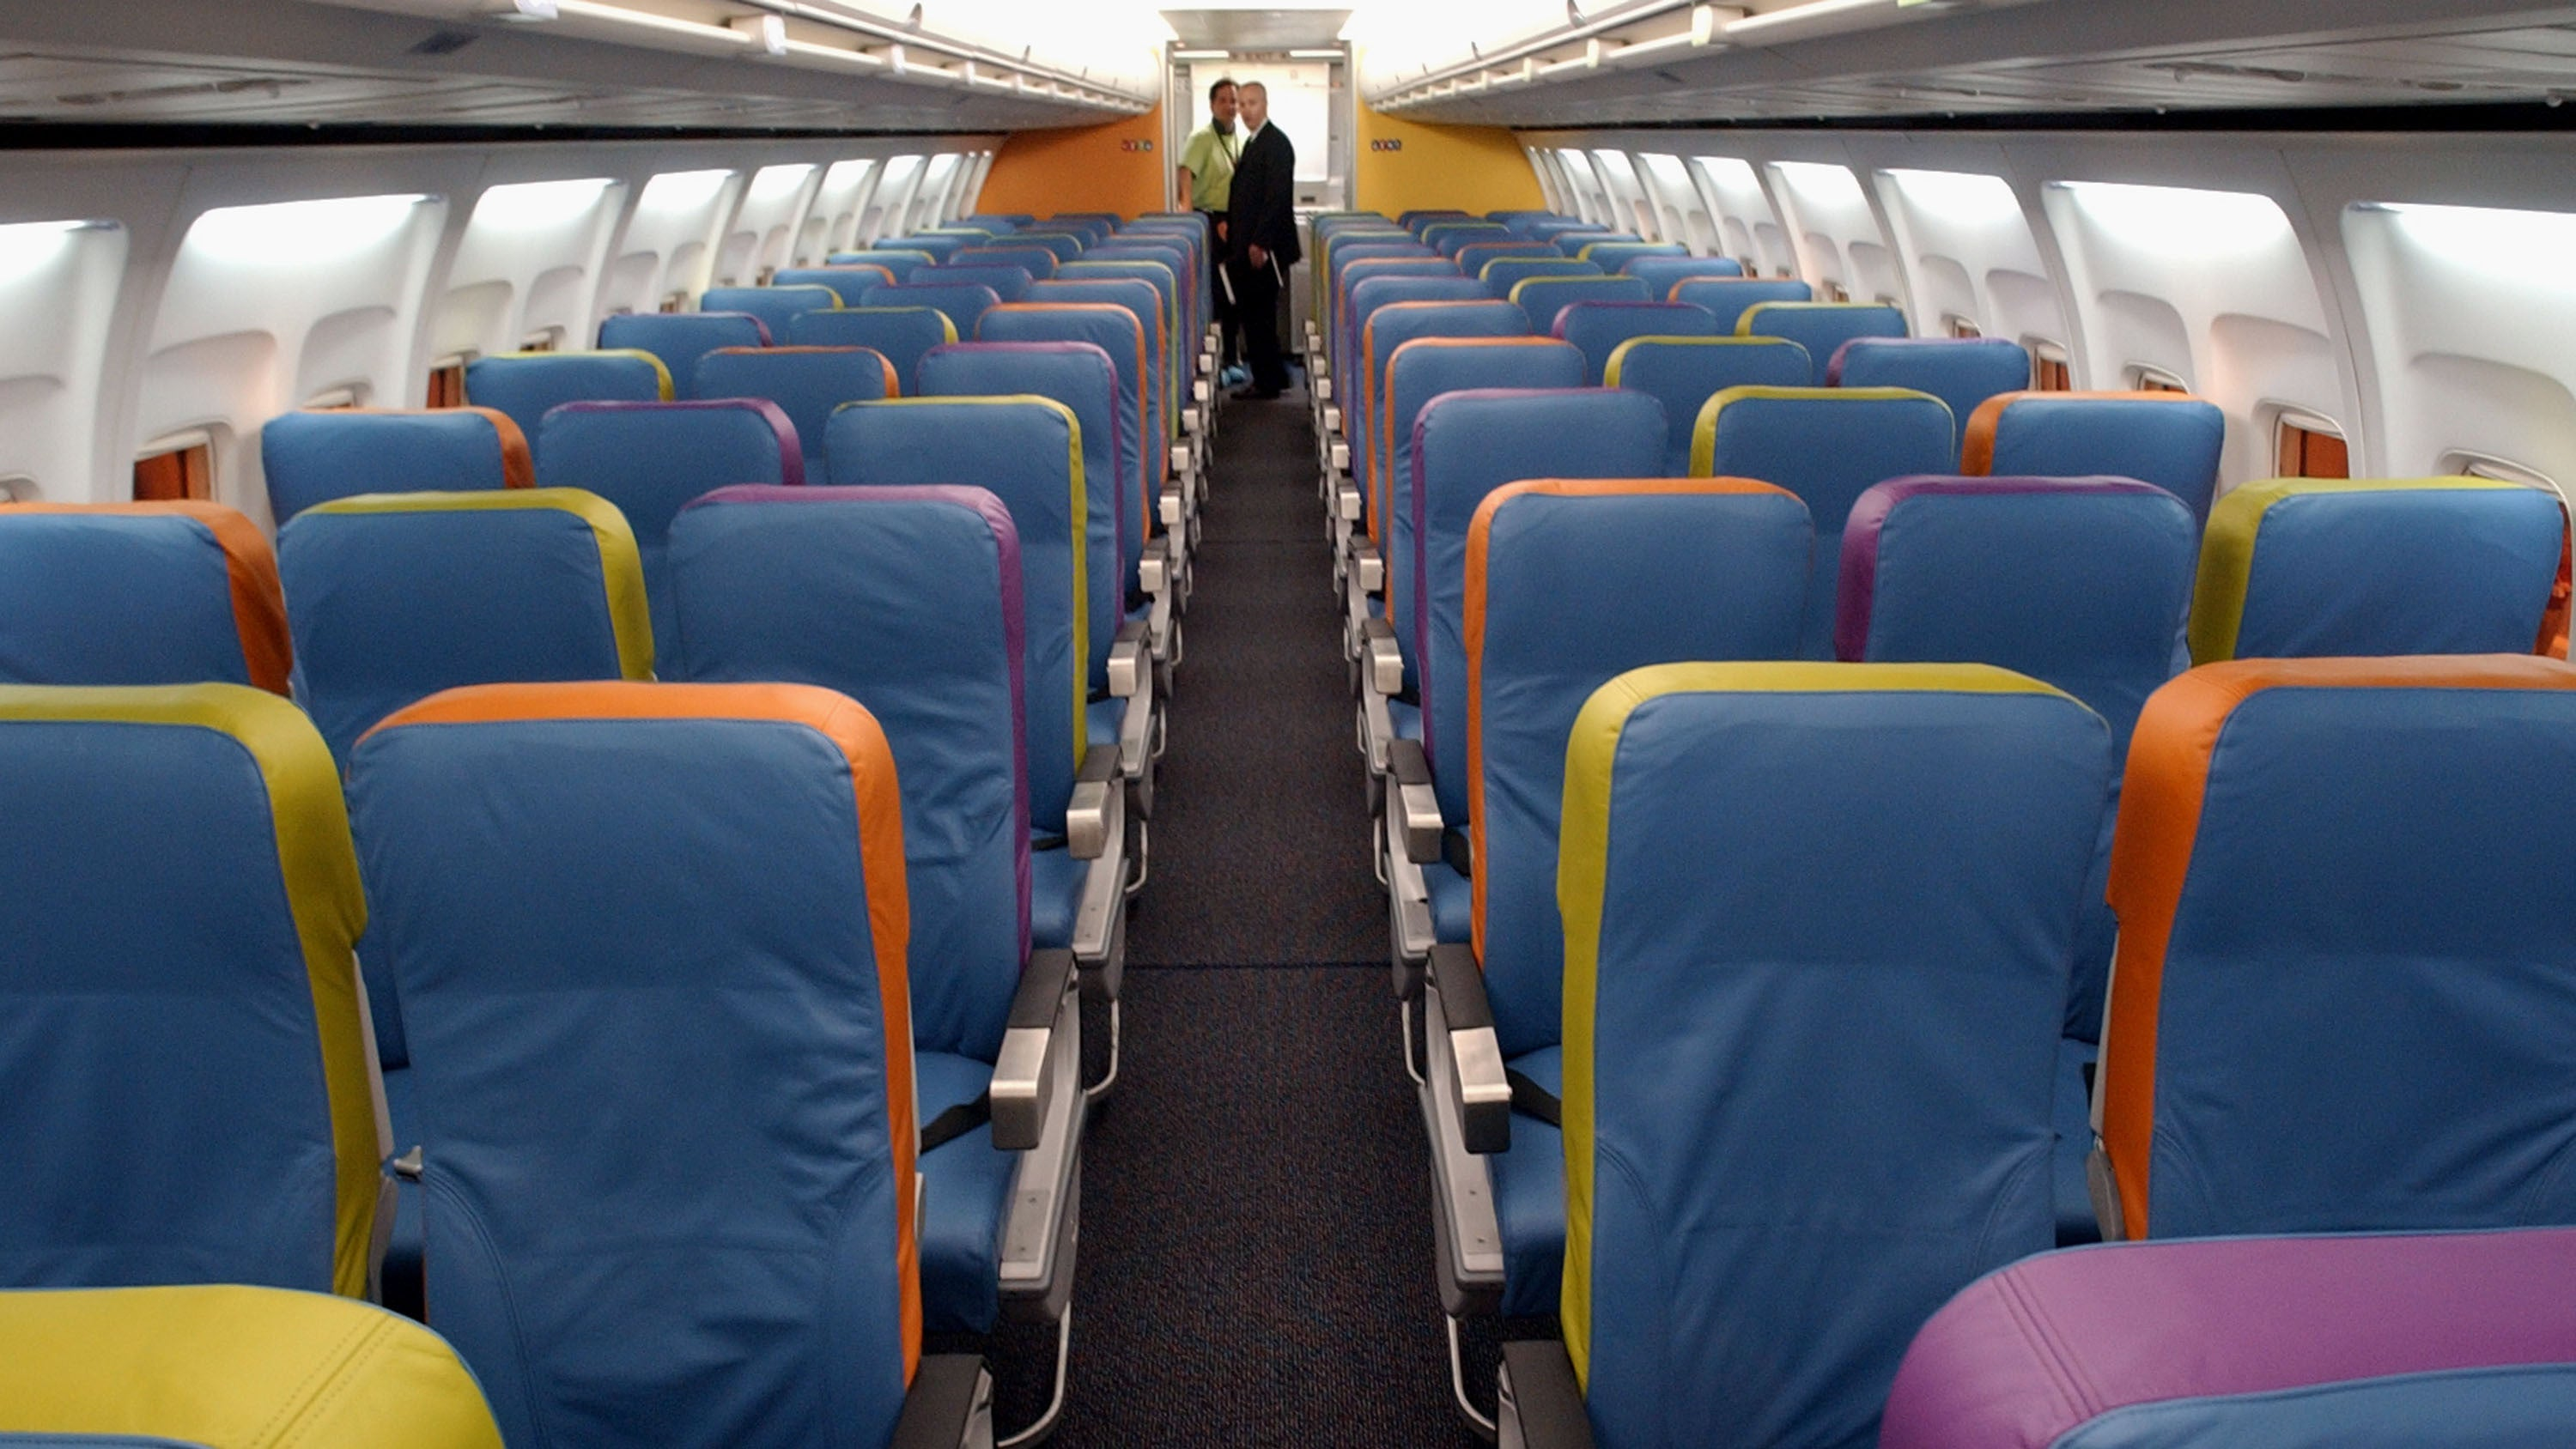 Here's How Much Leg Room And Reclining Space You Get On 17 Major Airlines